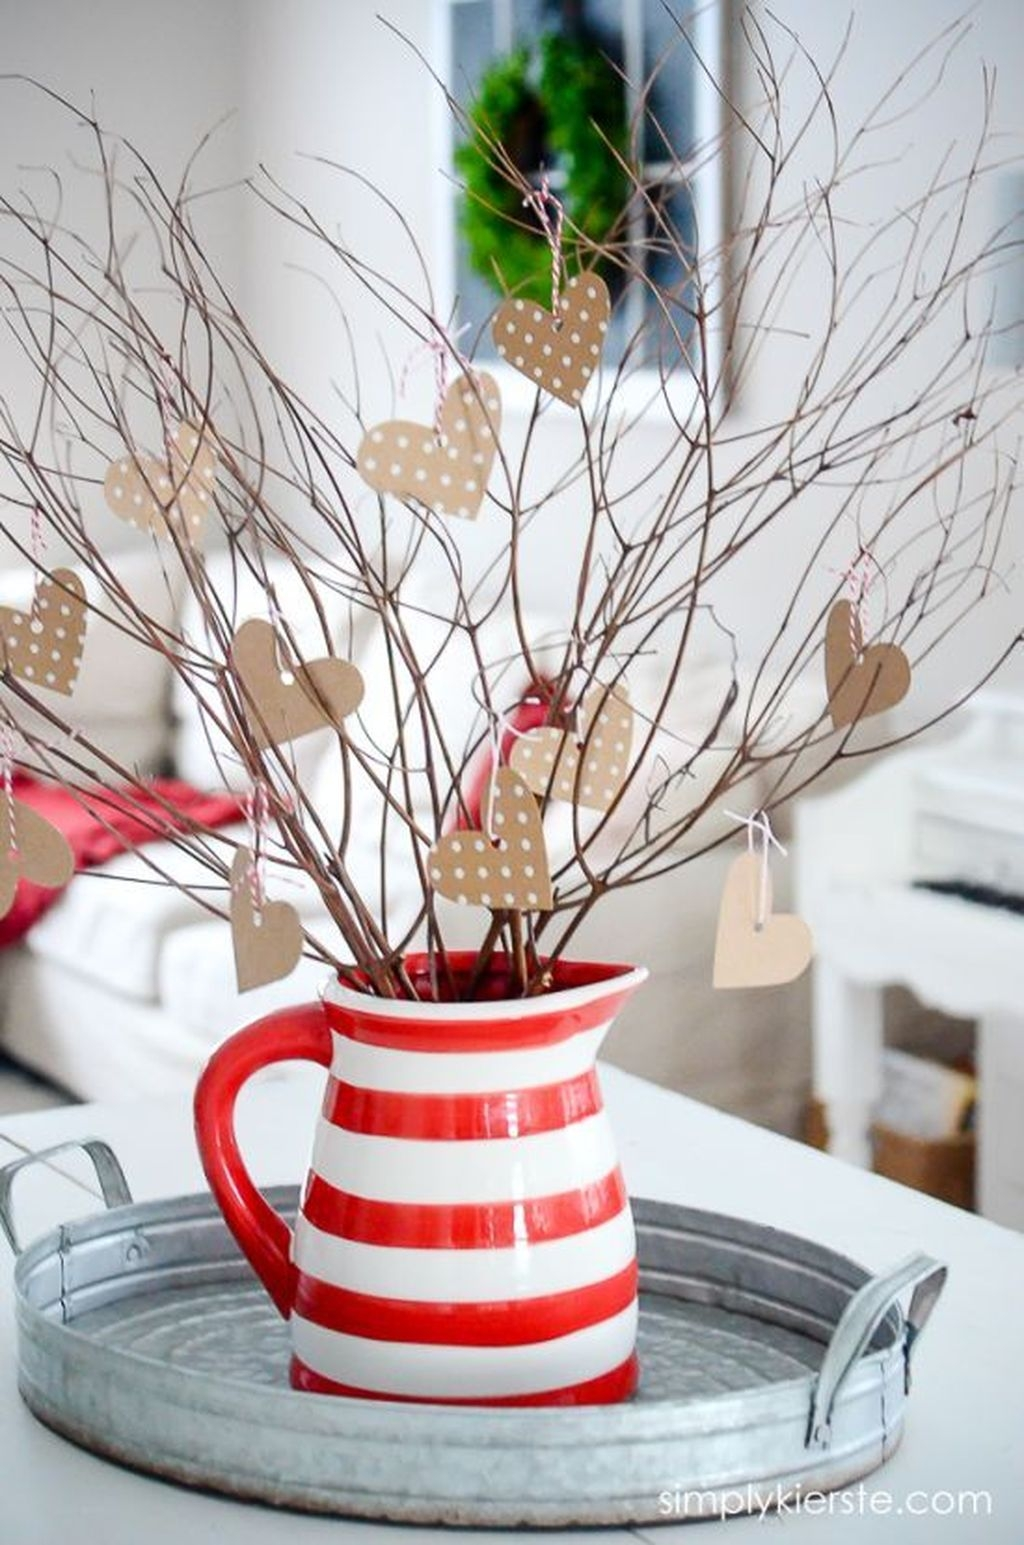 Charming Valentine'S Day Decoration Ideas For 201936